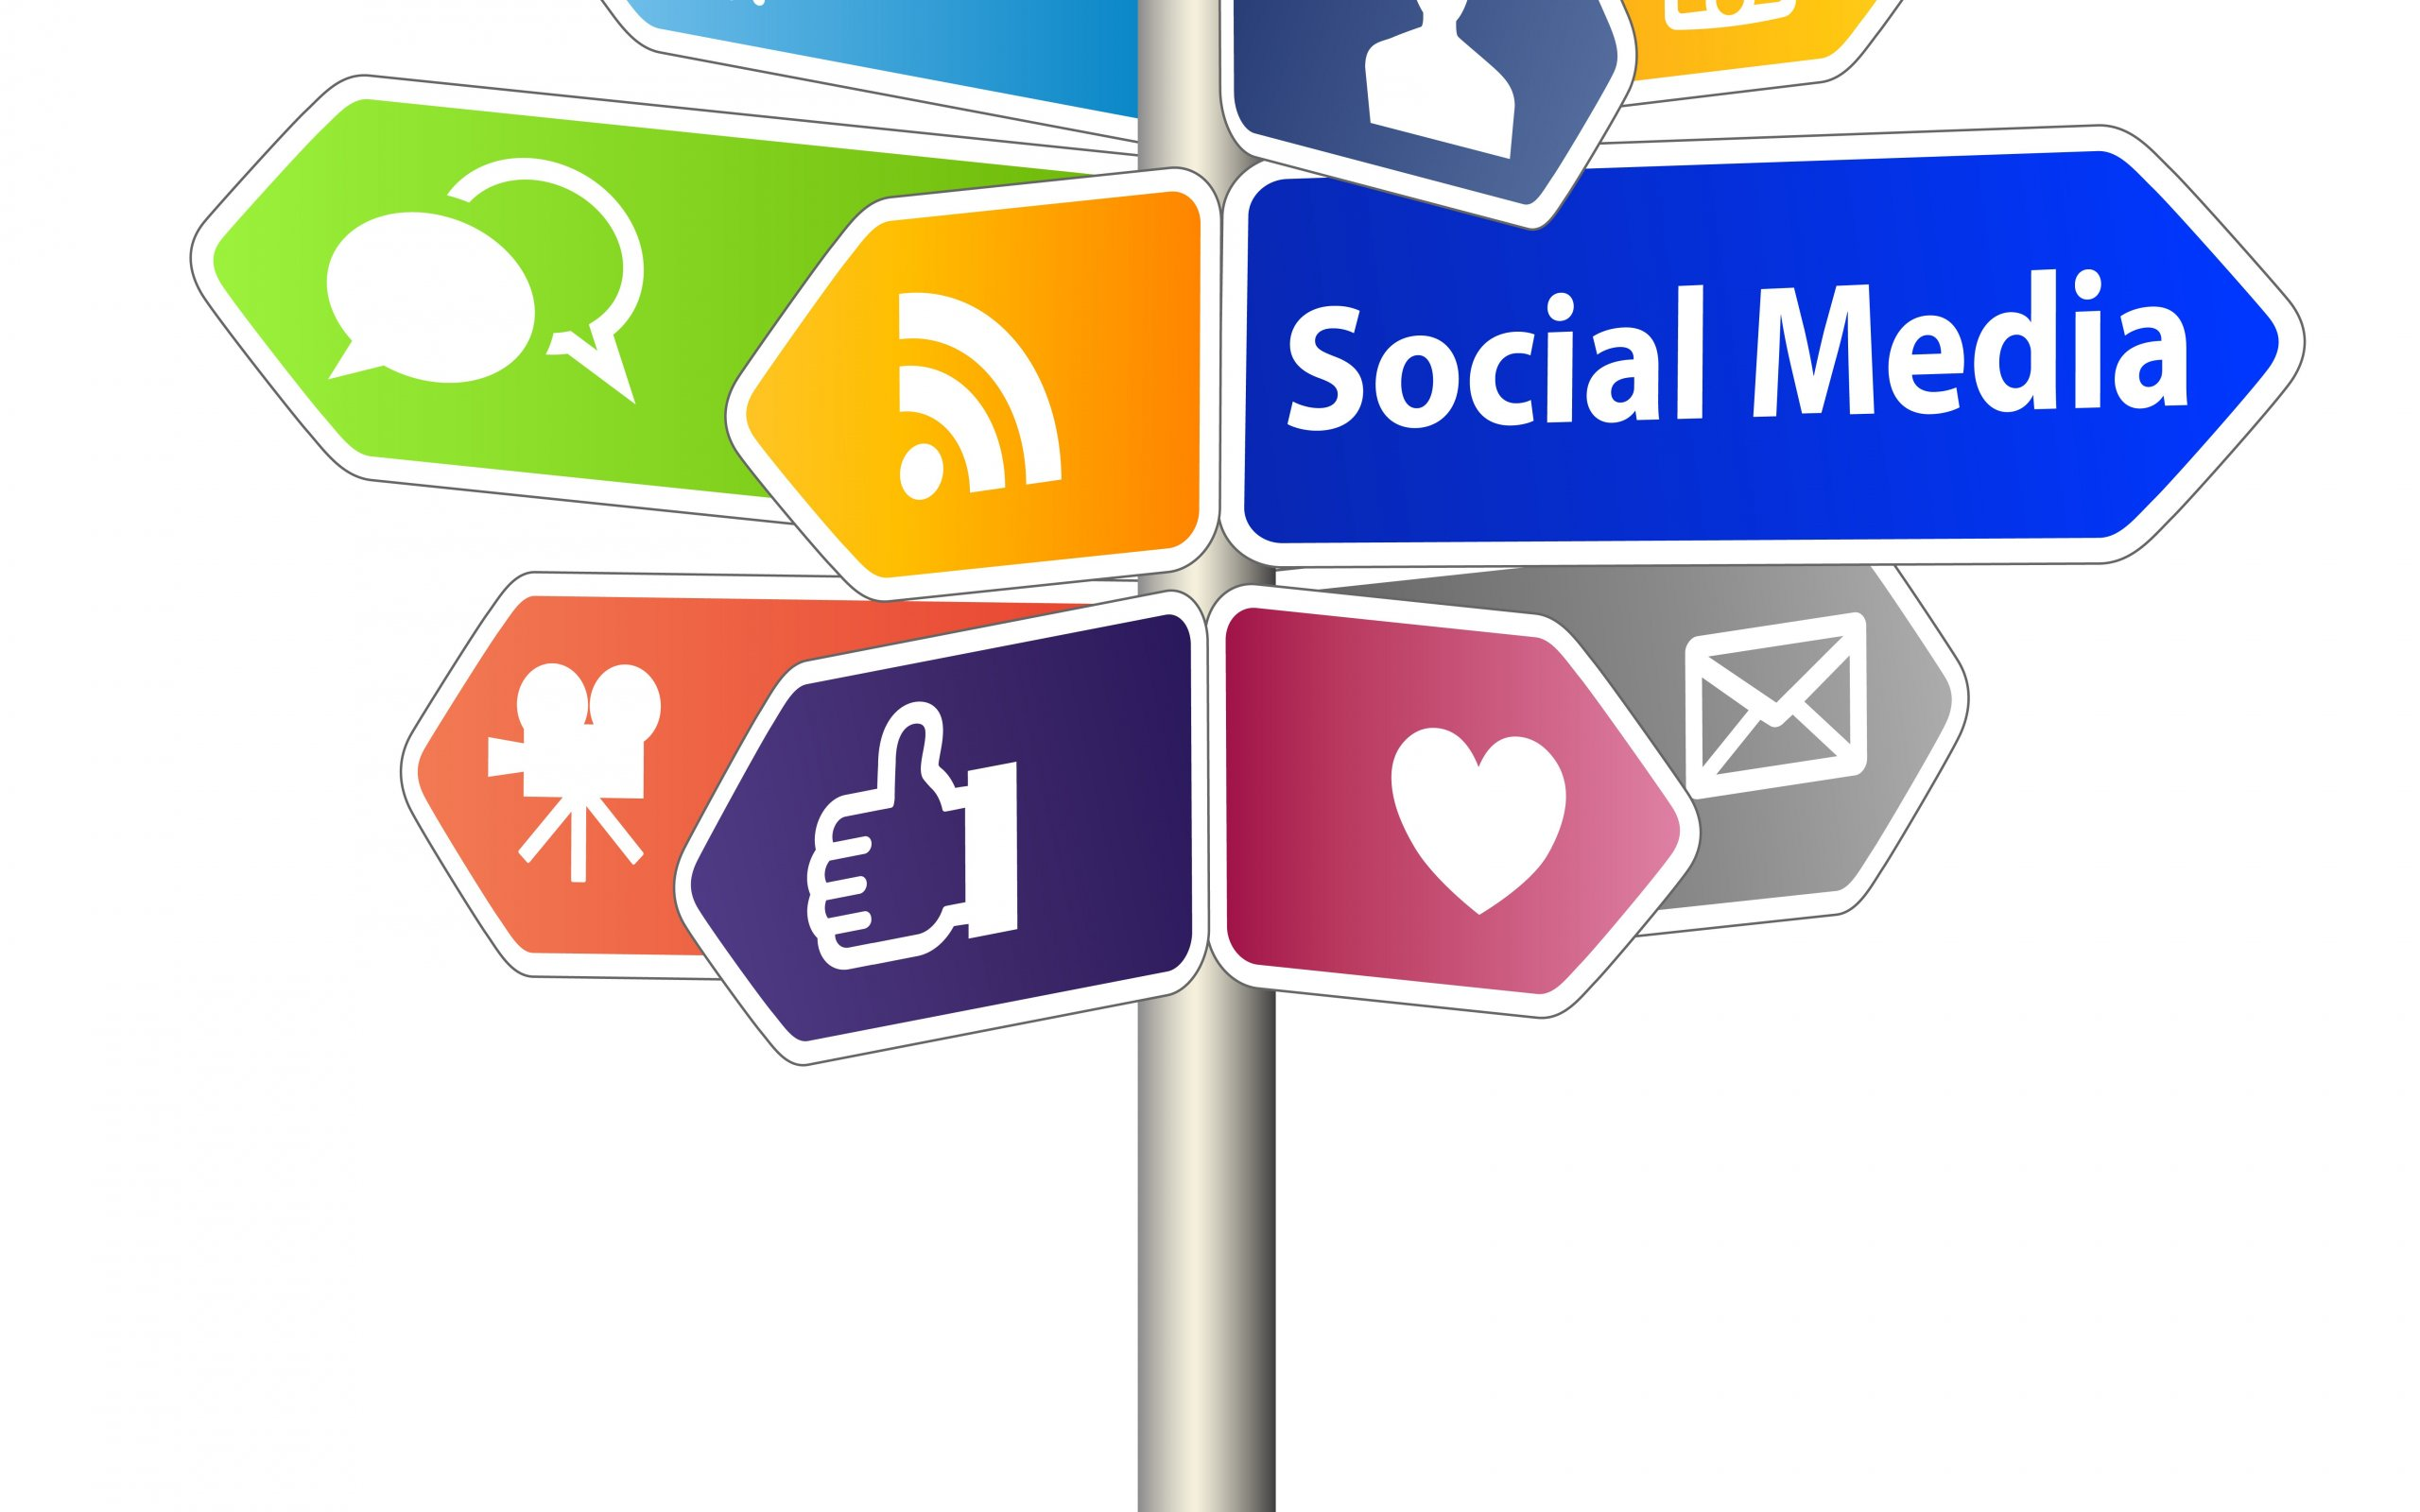 social media direction board icons internet wallpapers hd 2560x1600